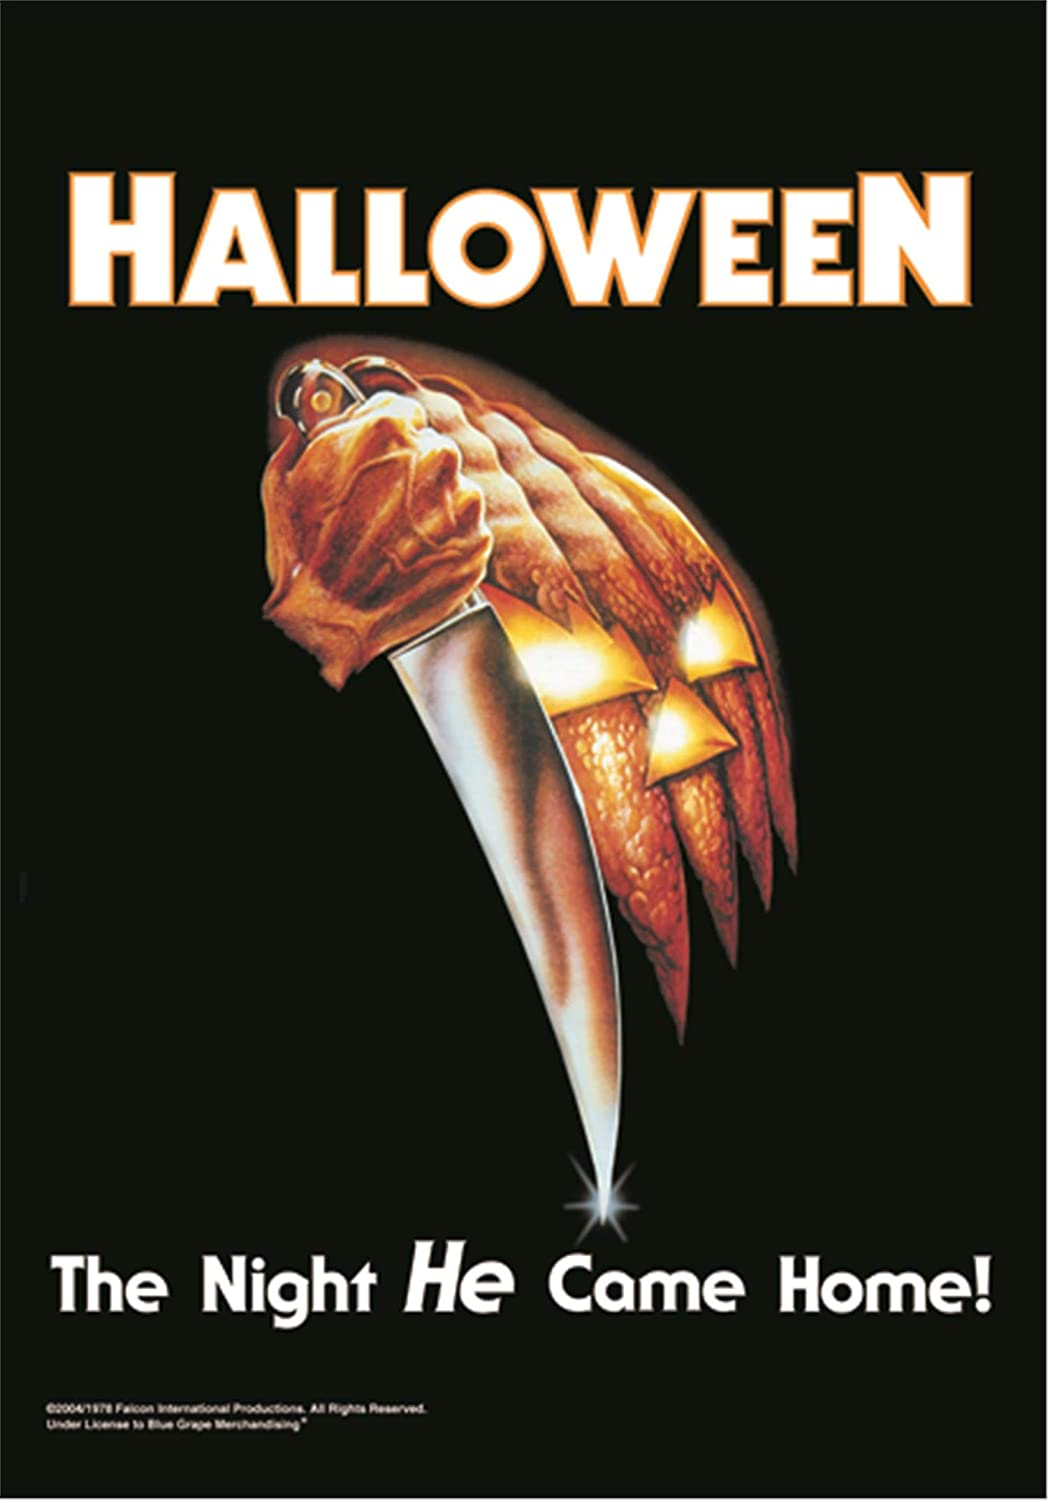 Halloween – The Night He Came Home Poster Flag